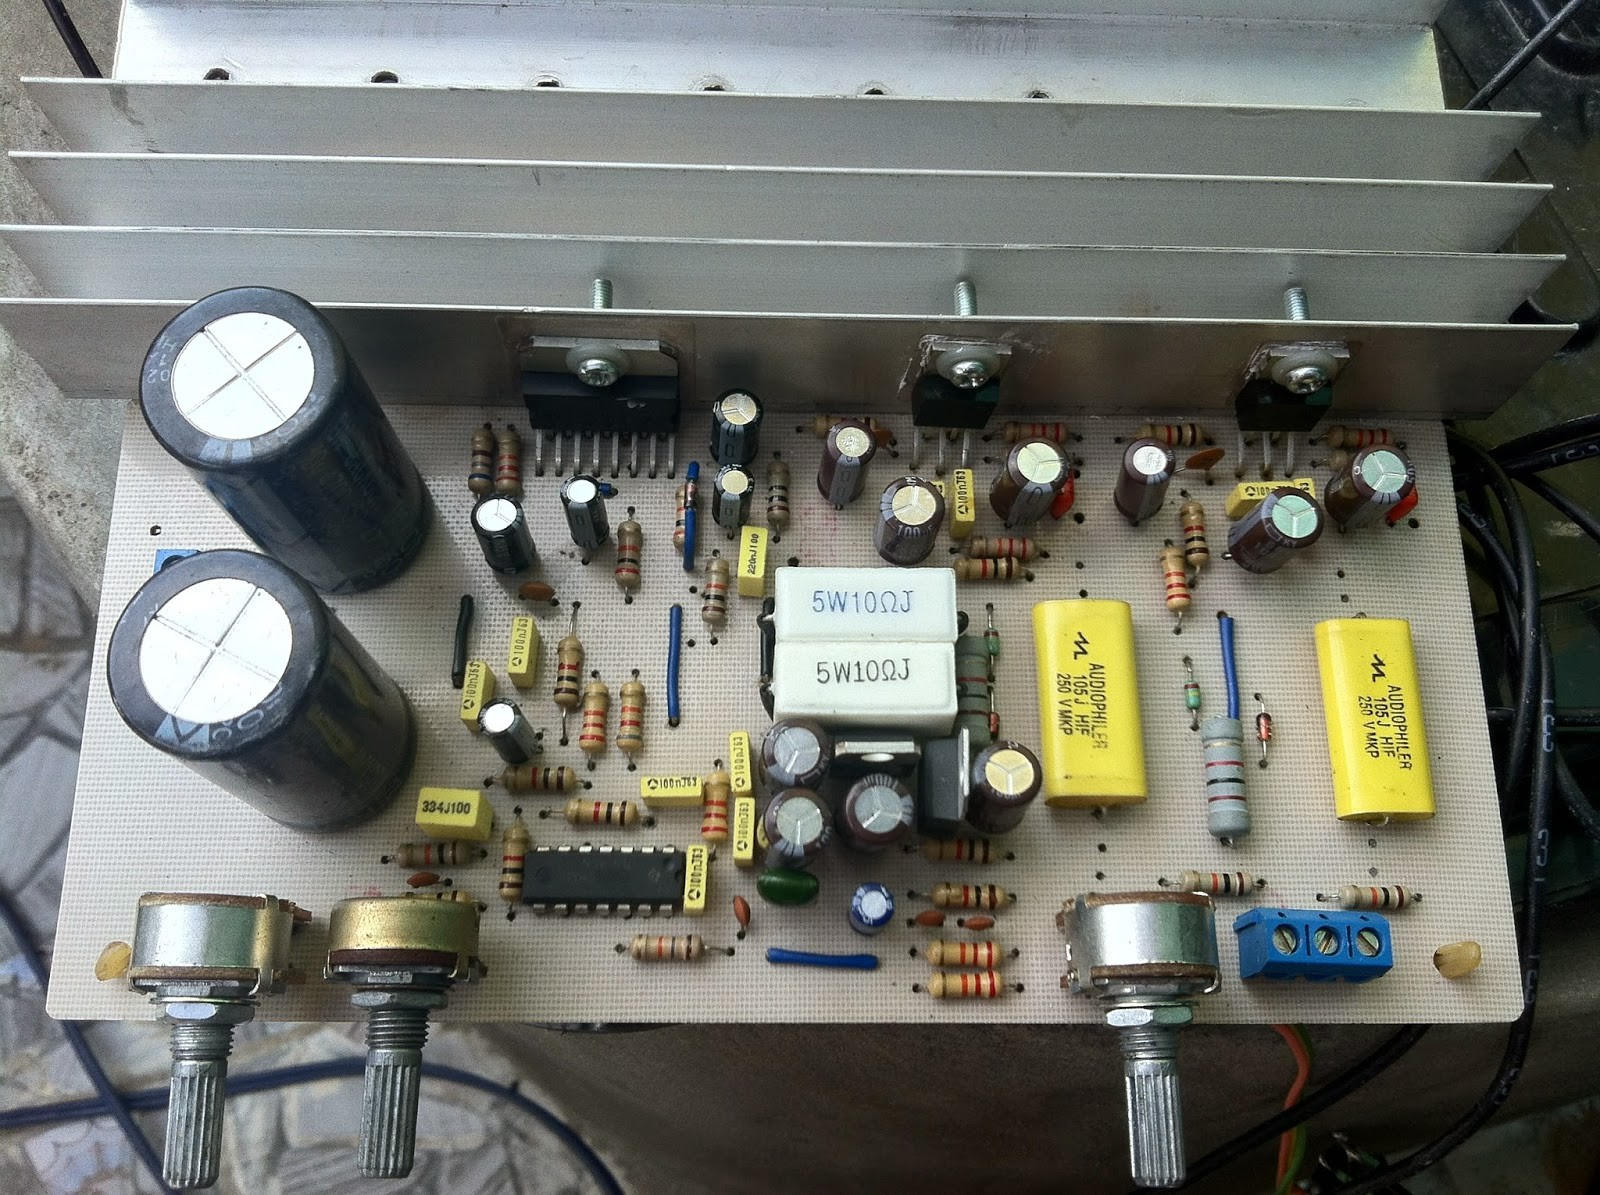 2.1 Amplifier With TDA7294 and LM1875 24